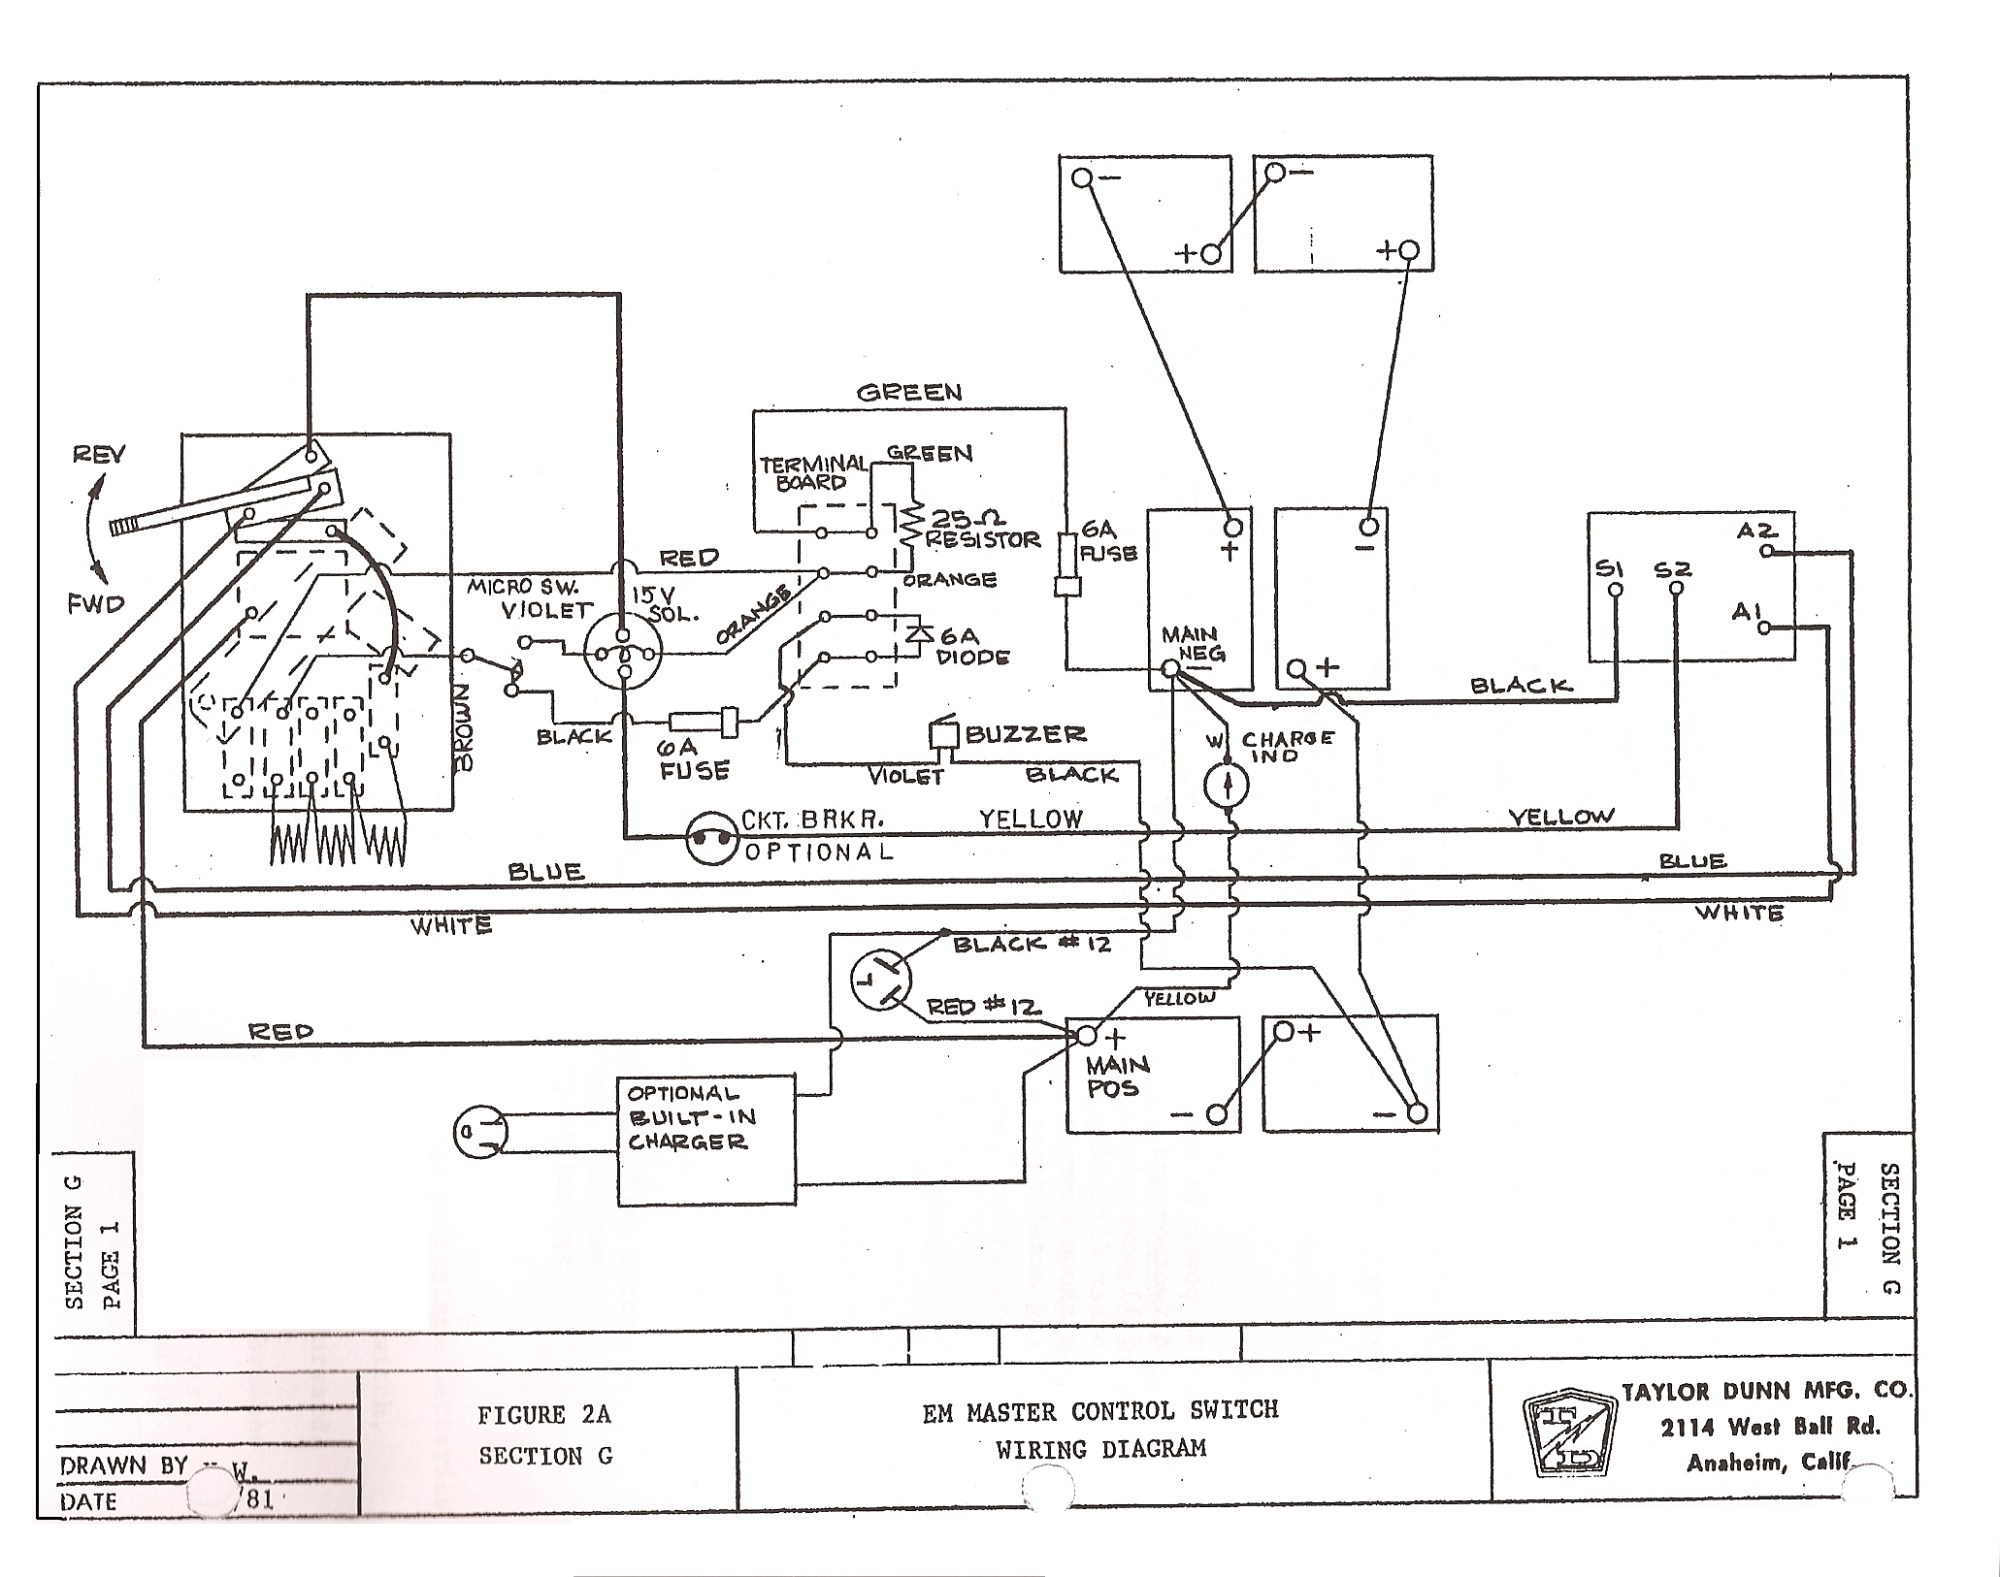 hight resolution of tomberlin 48 volt wiring diagram wiring diagrams schema tomberlin wiring diagram 2007 emerge 2 cushman 48